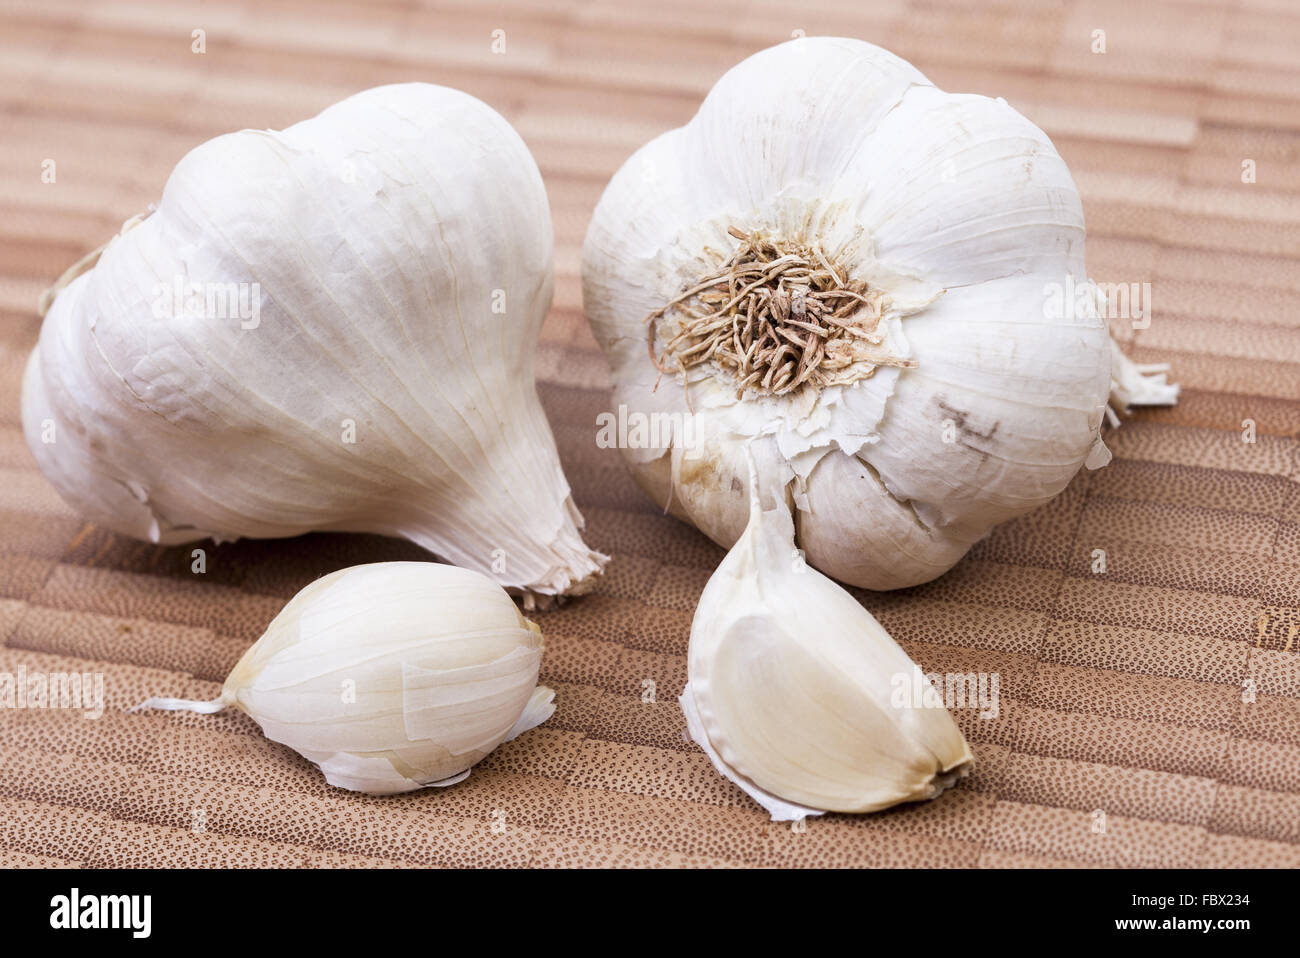 Fresh garlic - Stock Image